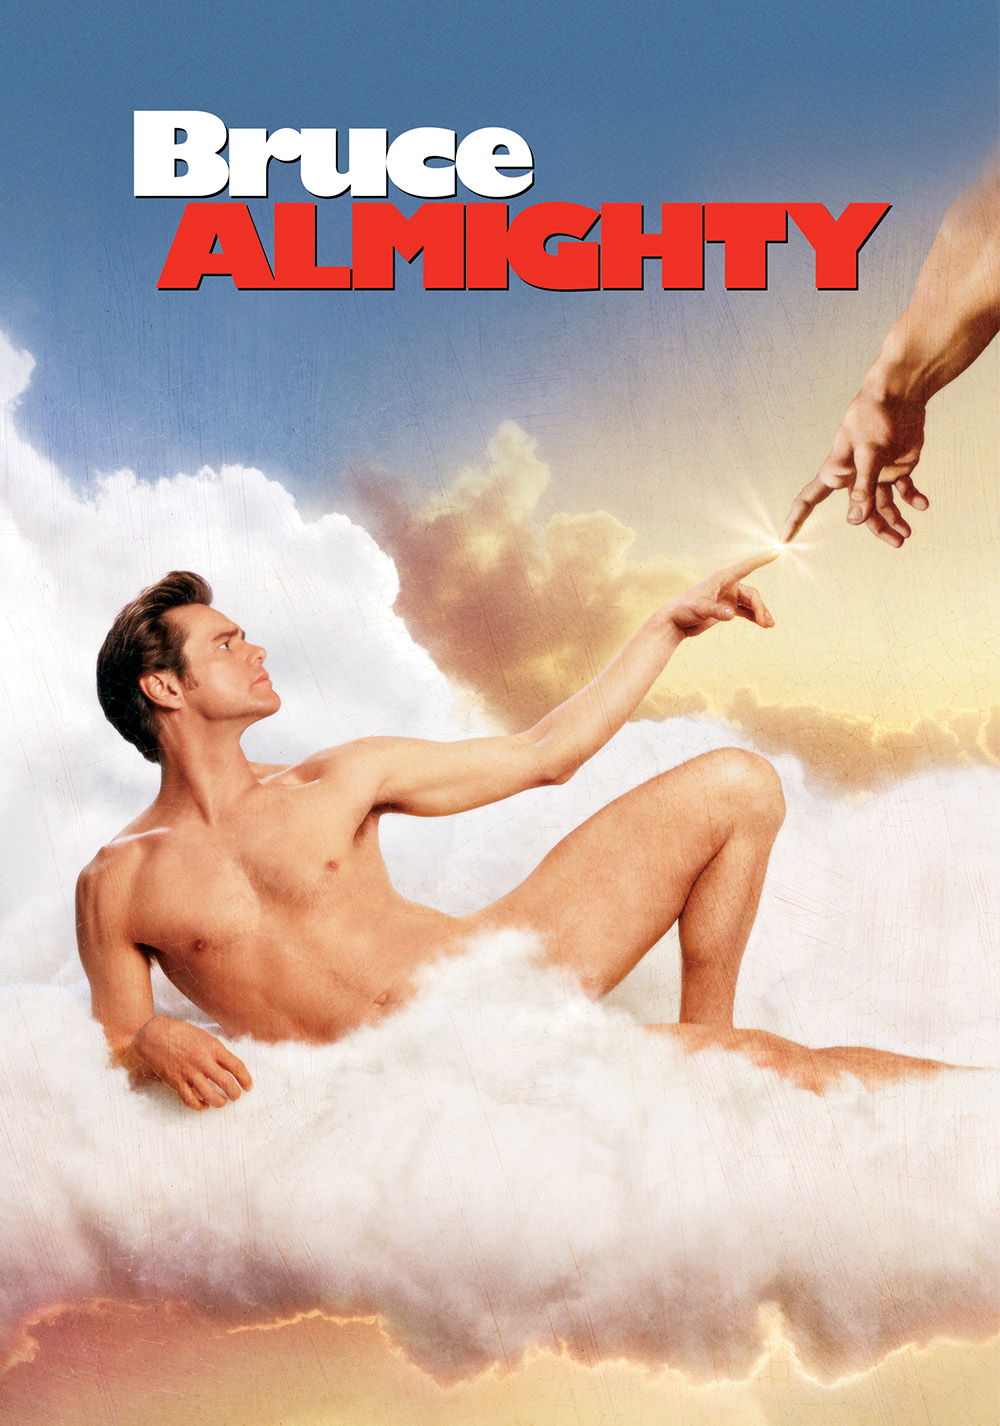 Bruce Almighty (2003) ταινιες online seires oipeirates greek subs